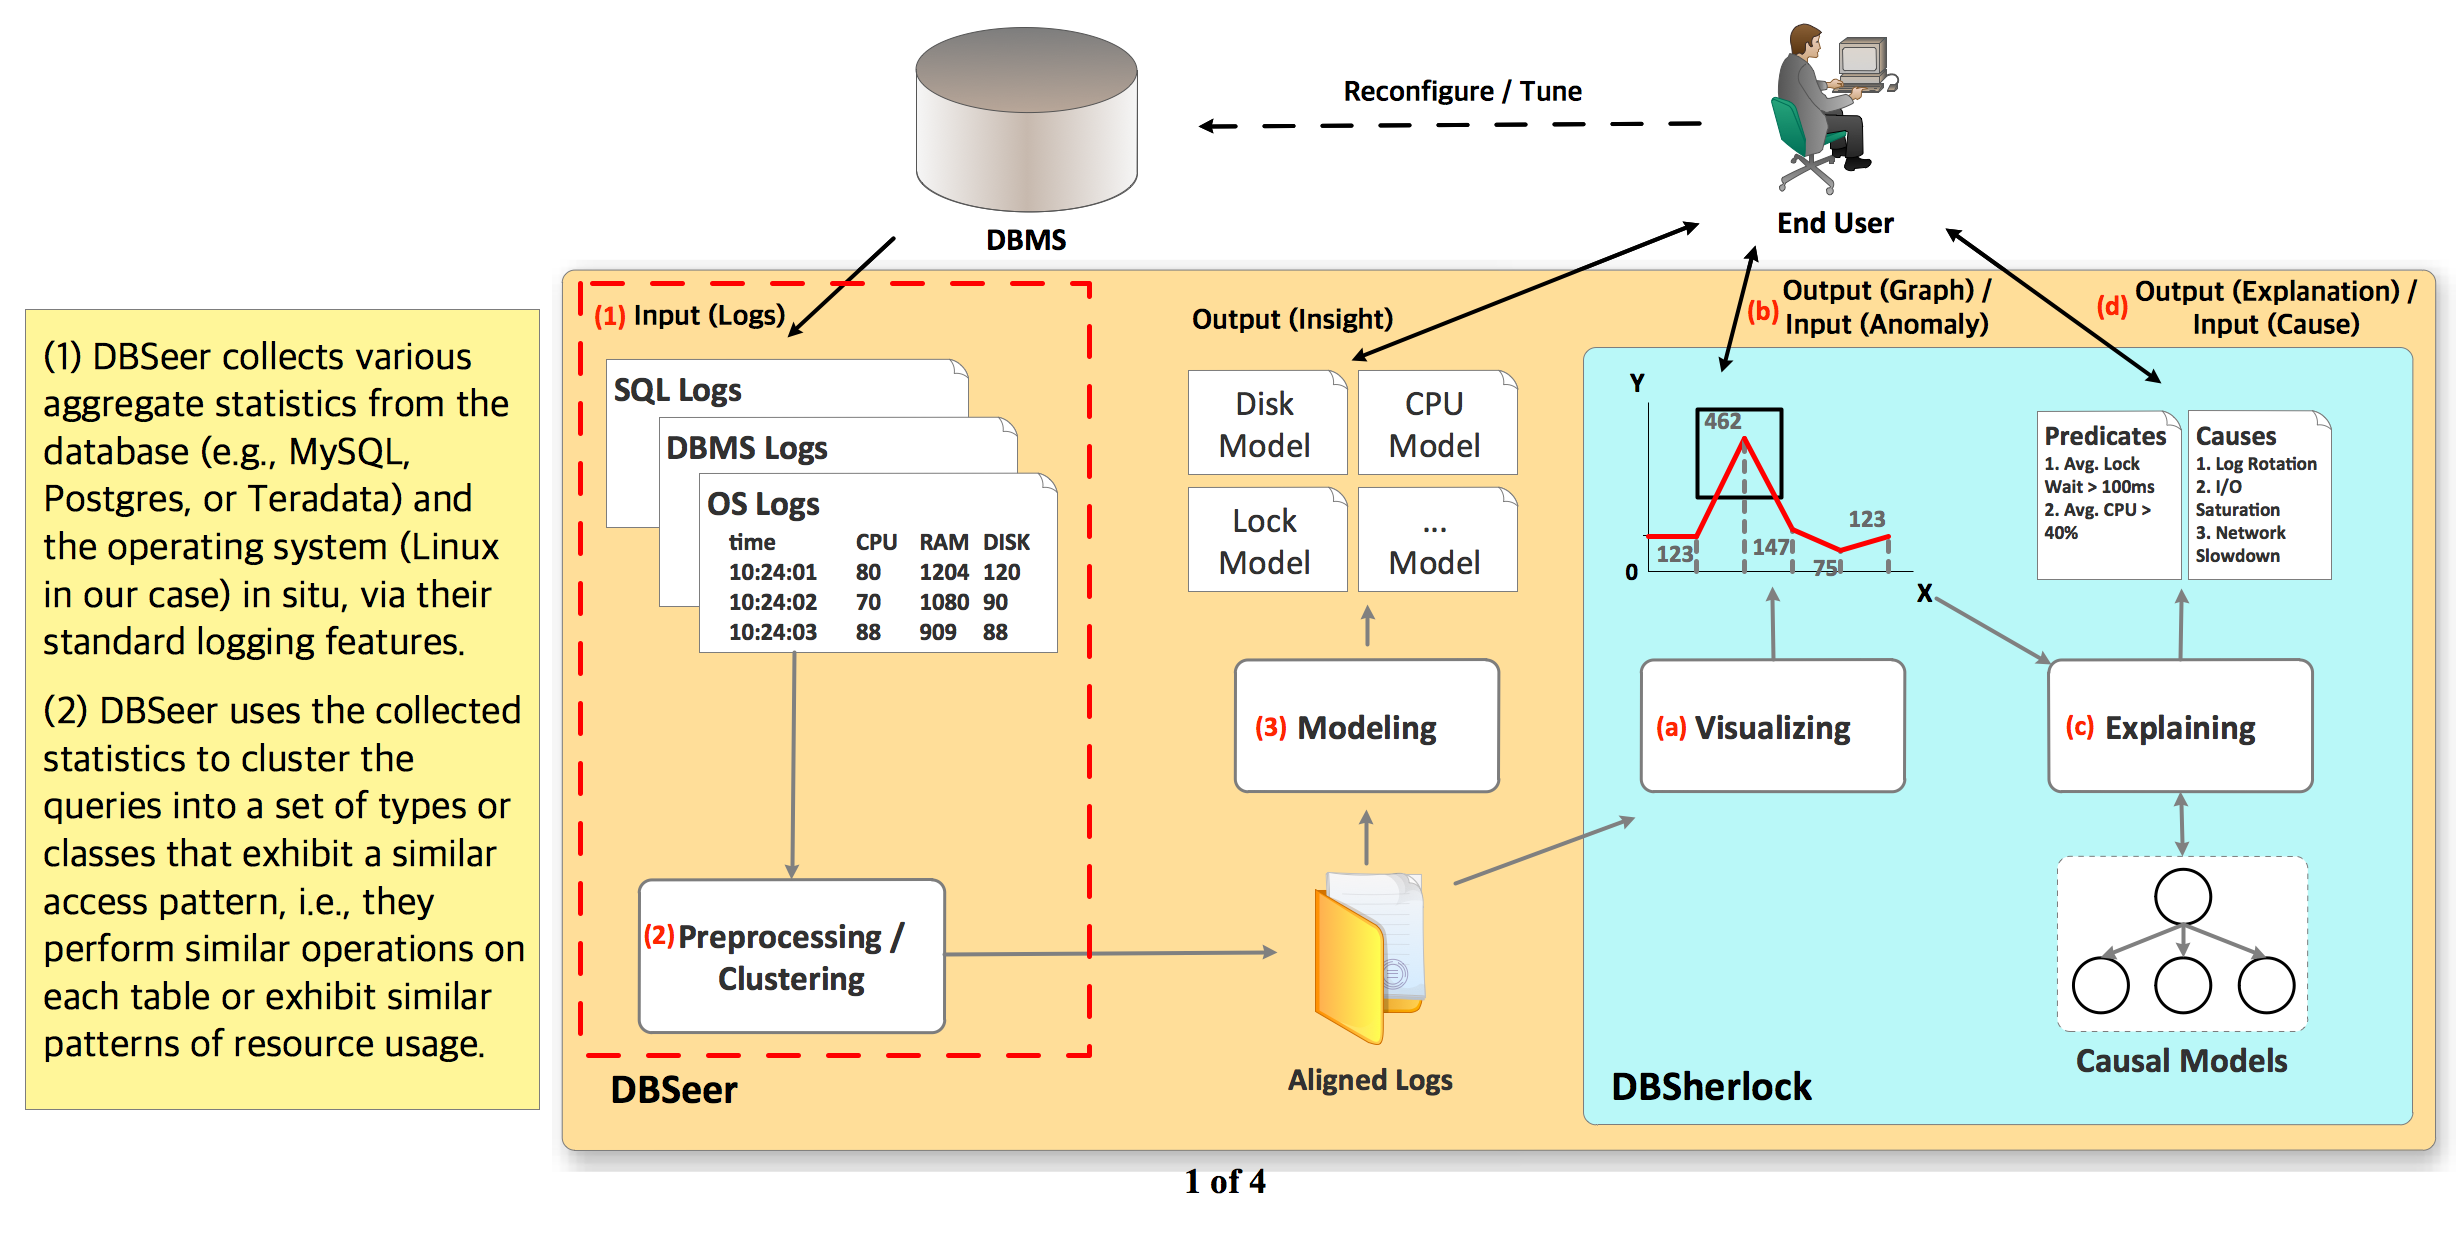 DBSeer collects various aggregate statistics from database